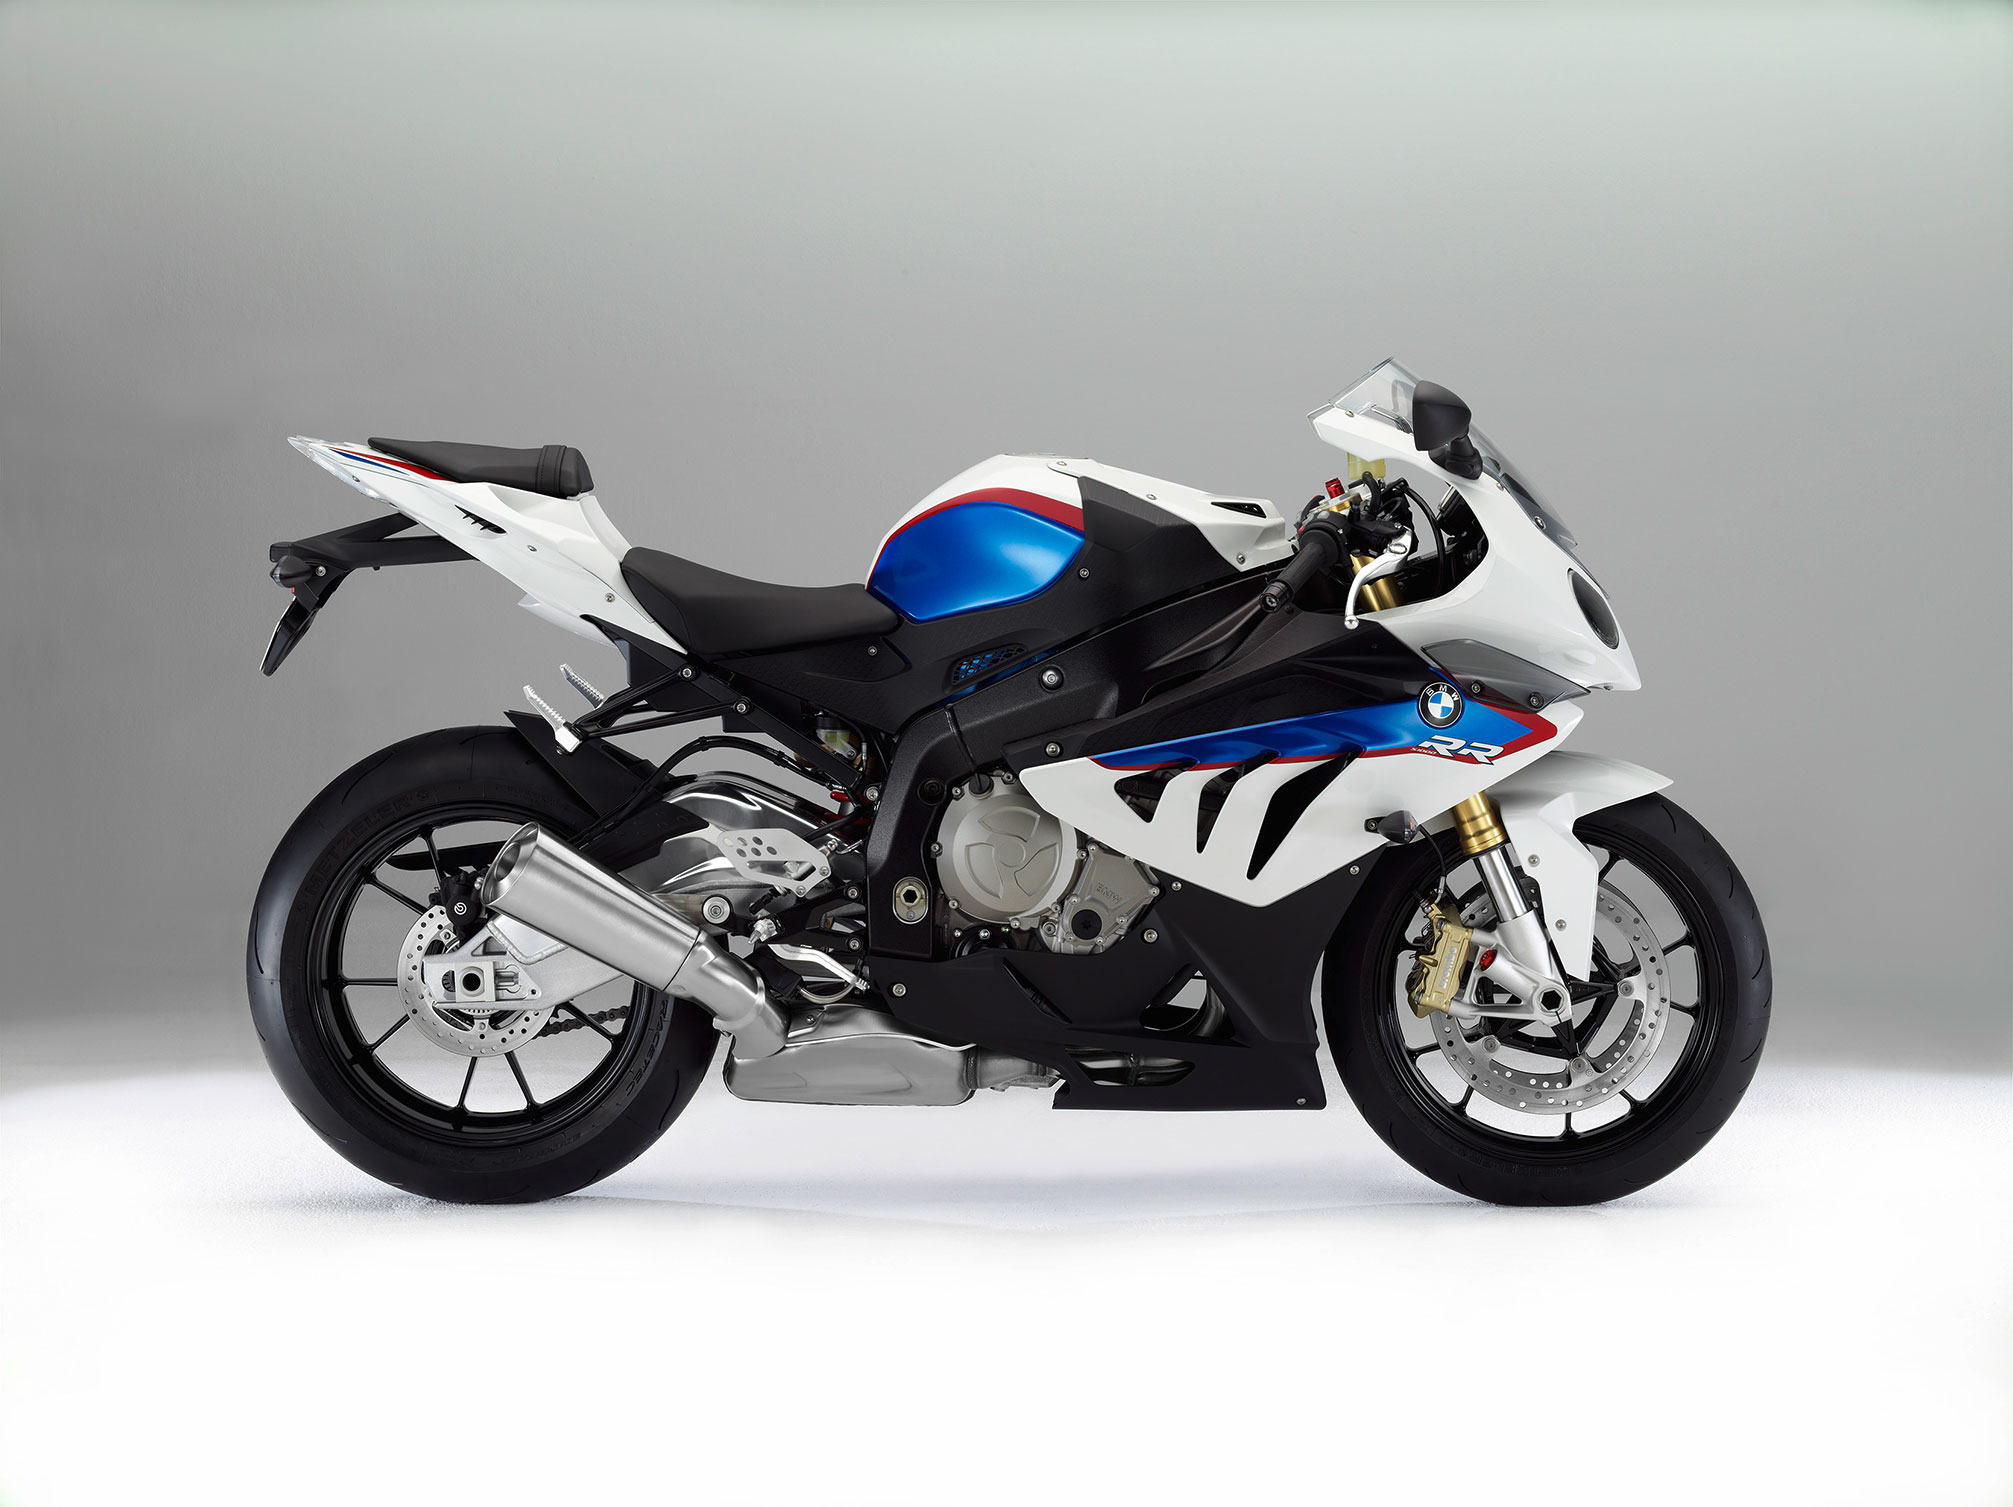 2013 BMW S1000RR Review